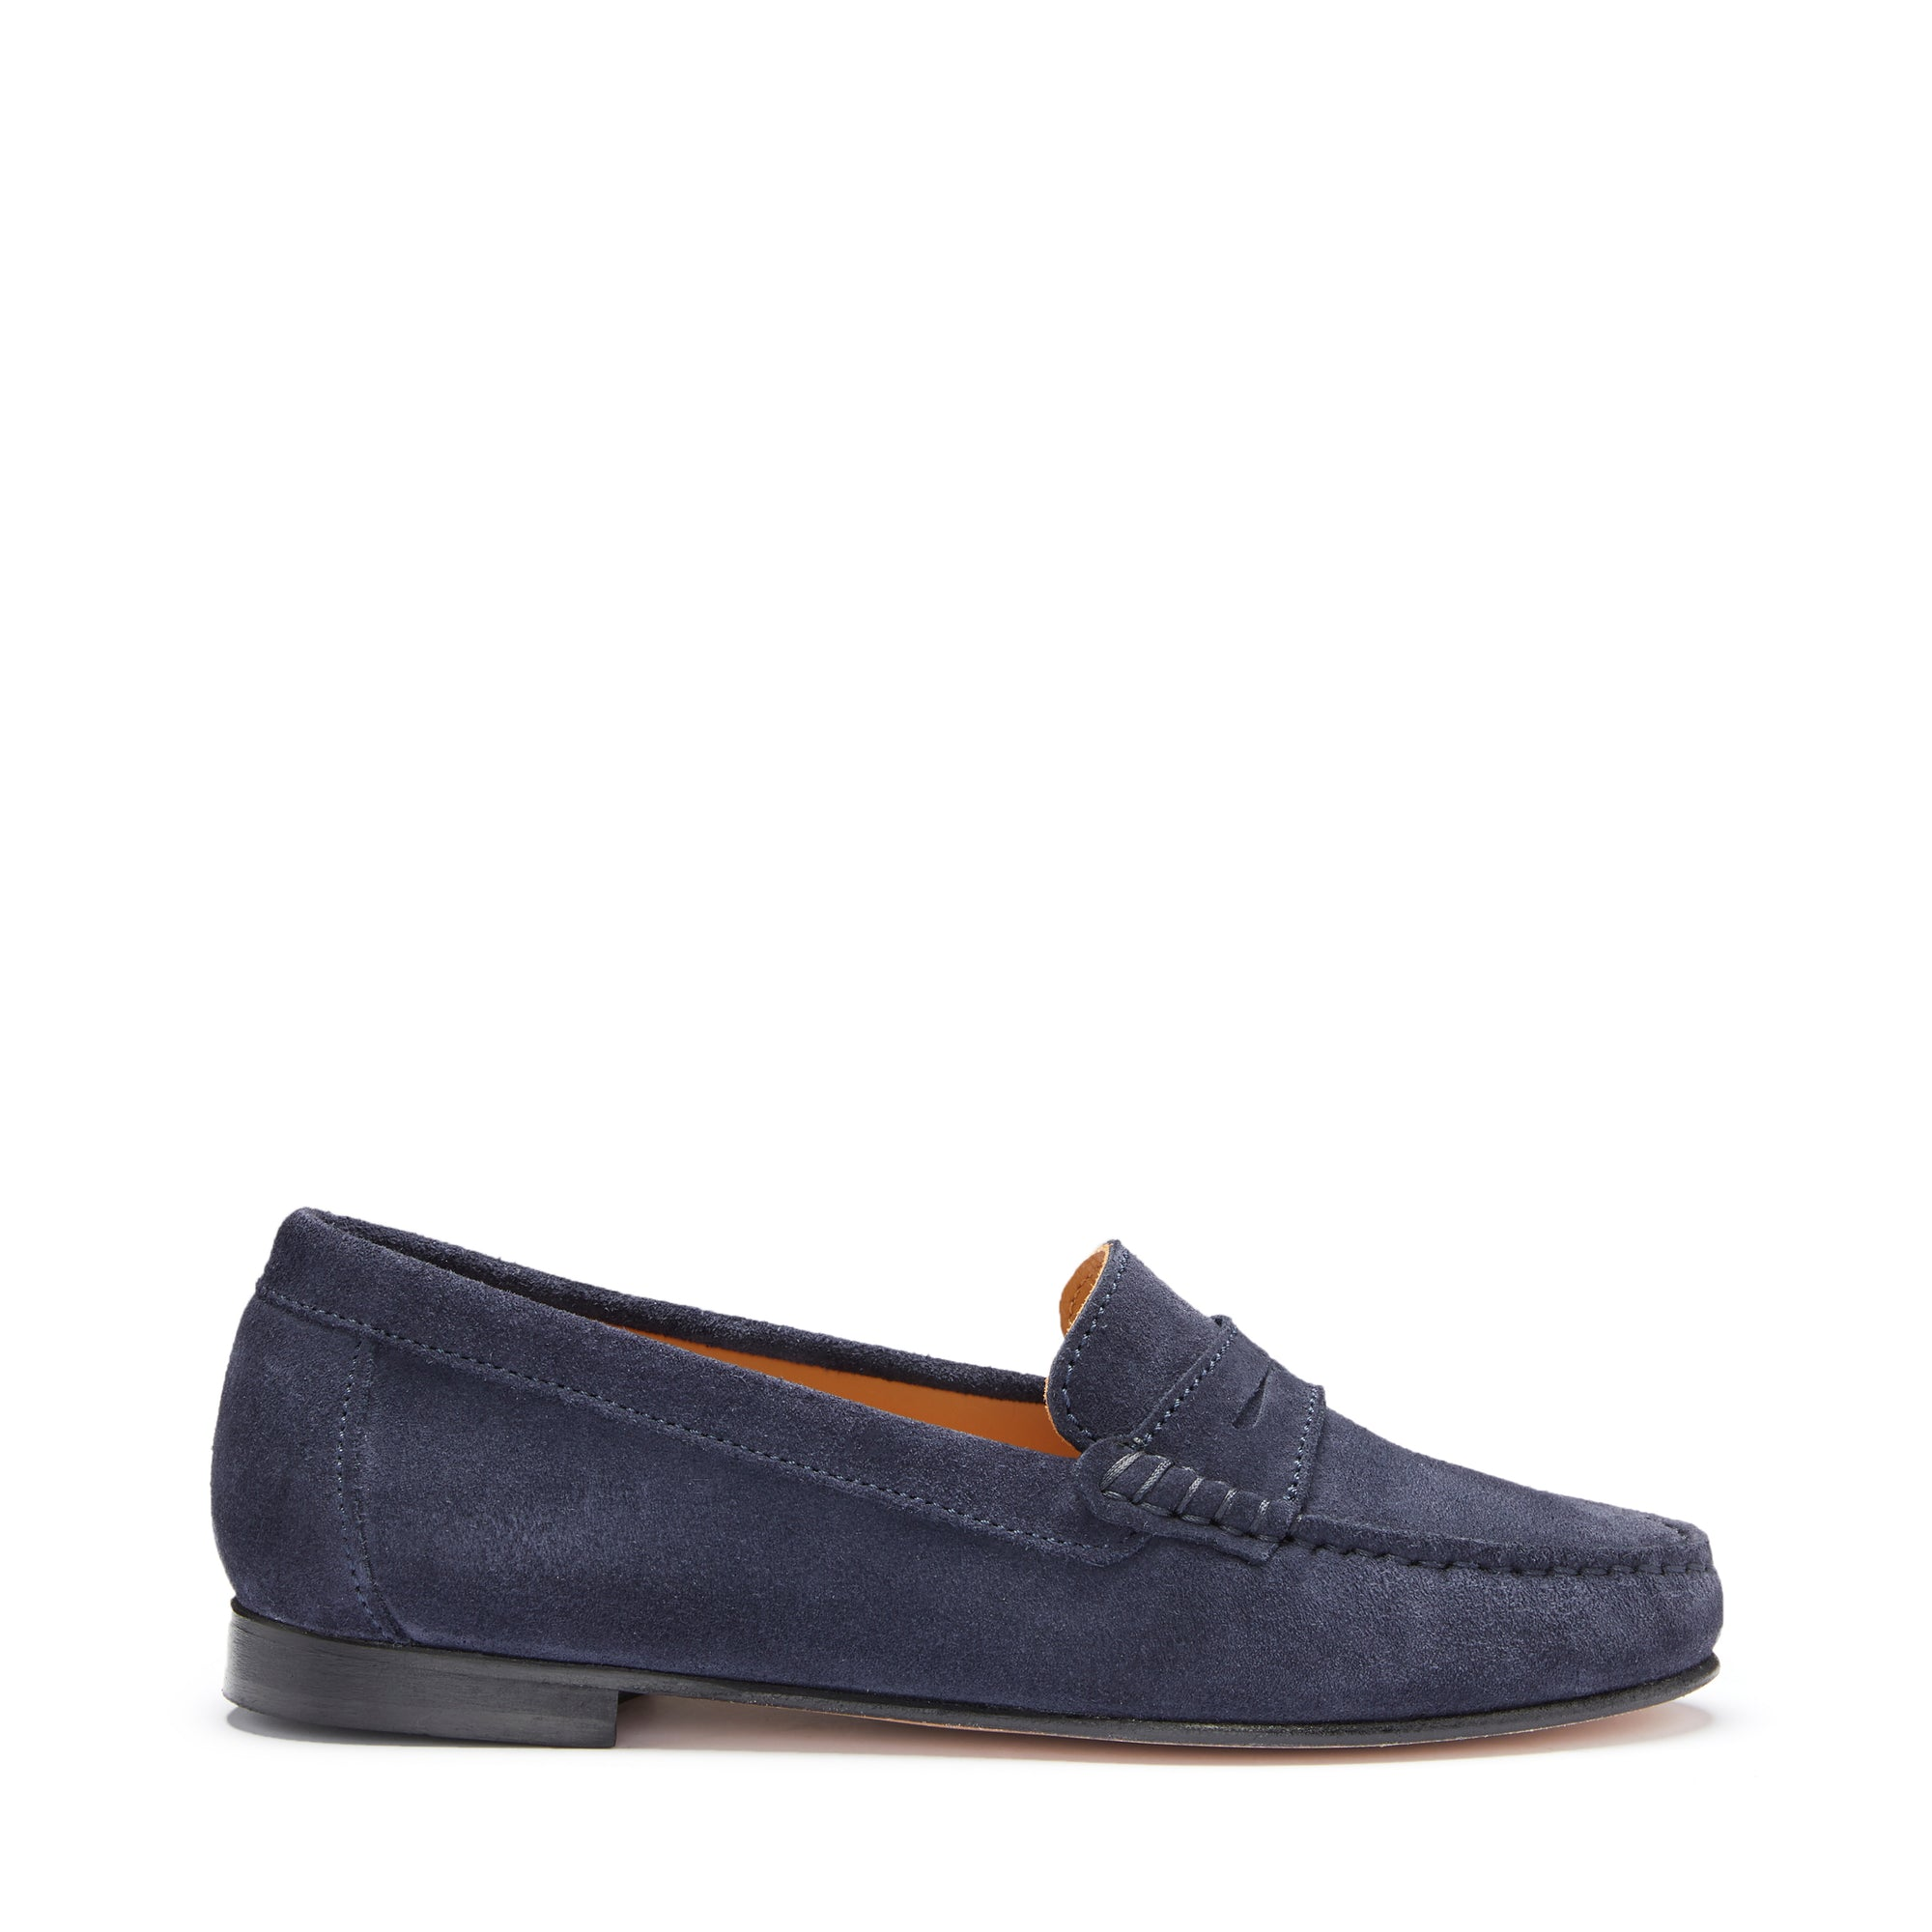 Women's Penny Loafers Leather Sole, navy blue suede